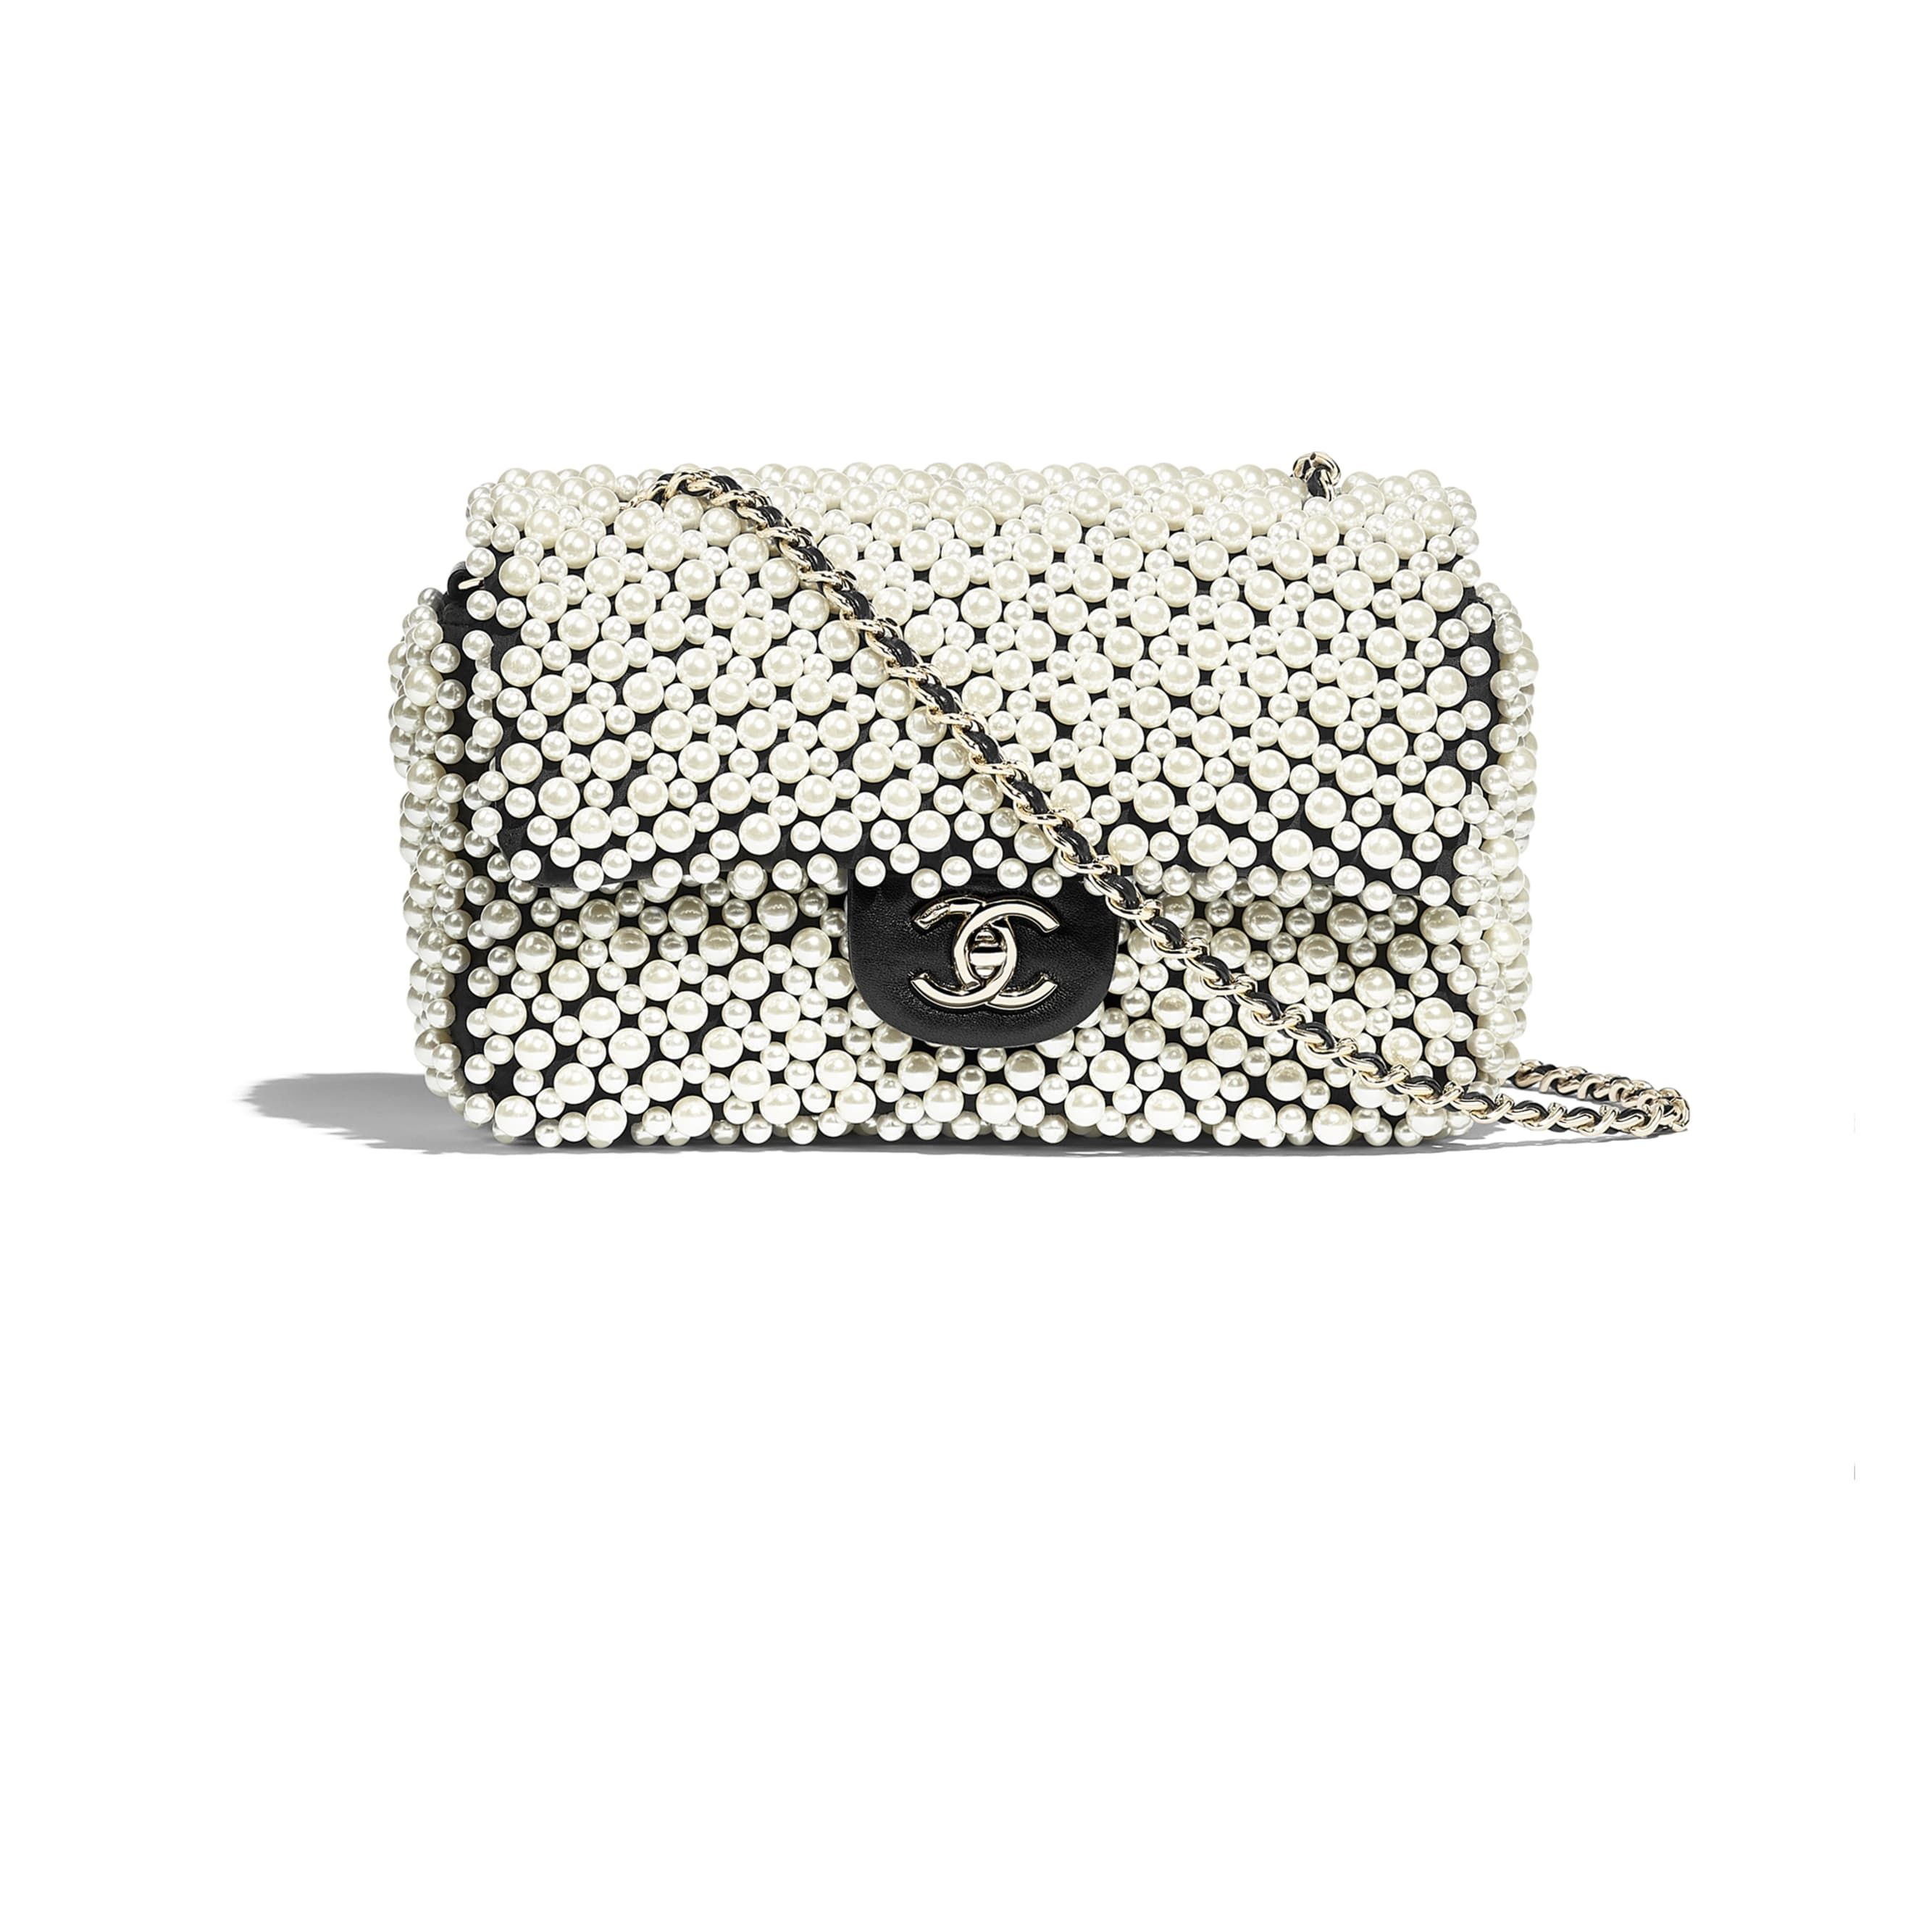 f8f52de1da5f Chanel - SS2019 | White & black imitation pearls, lambskin & gold-tone  metal flap bag ($4,900)